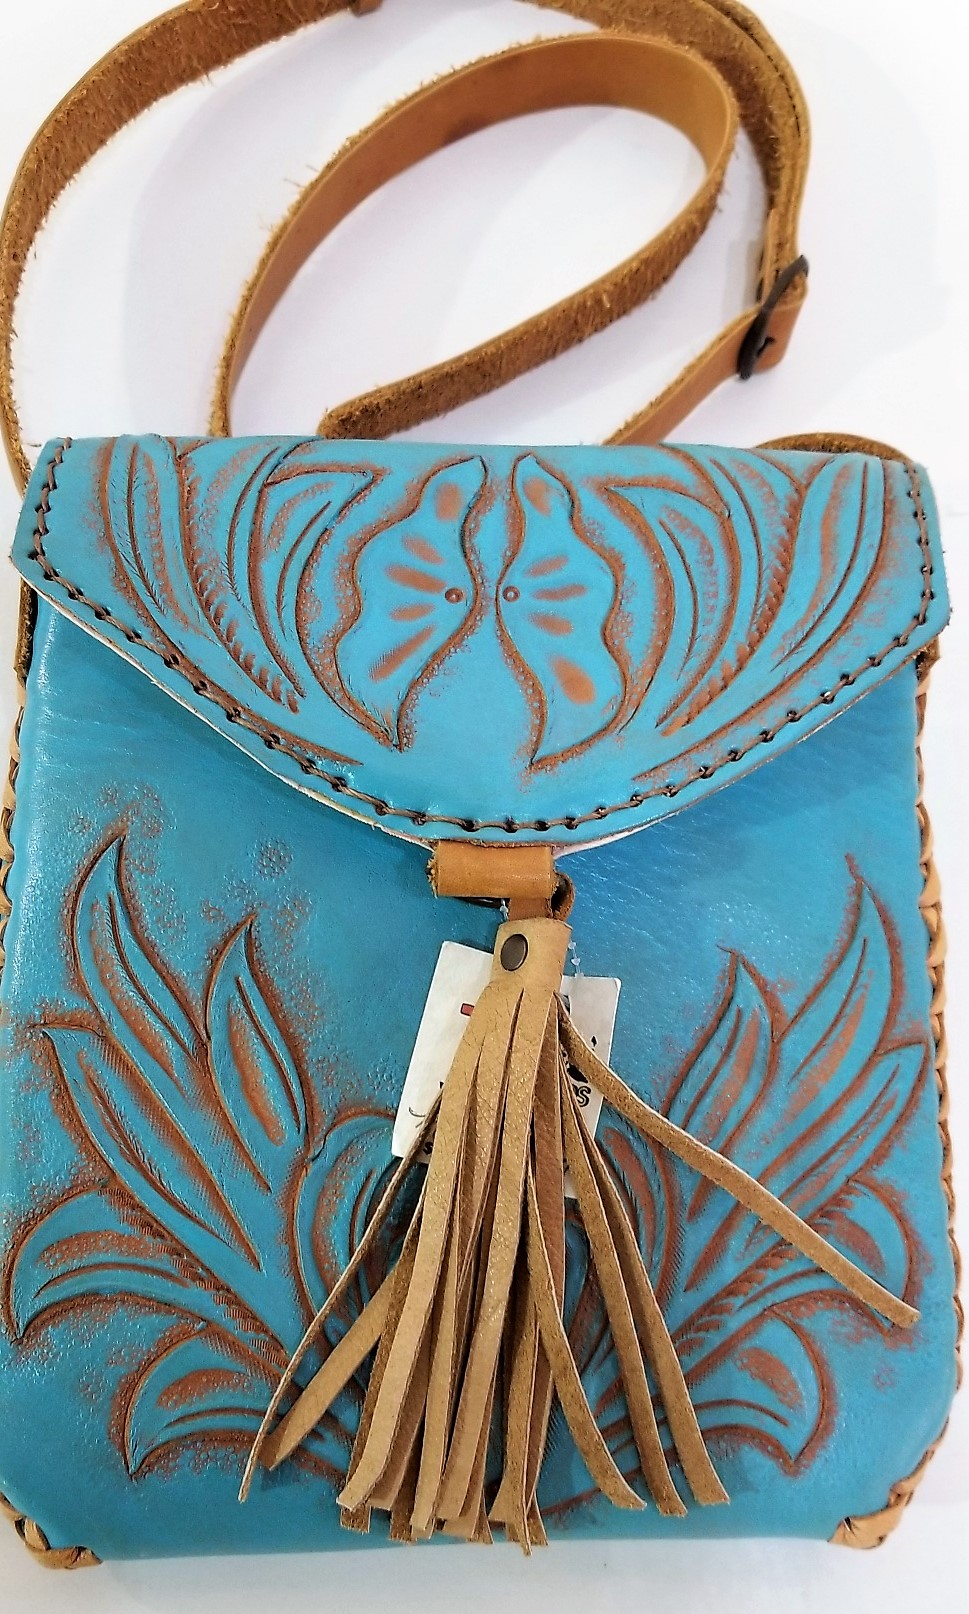 Mayan Hand-Tooled Leather Bag